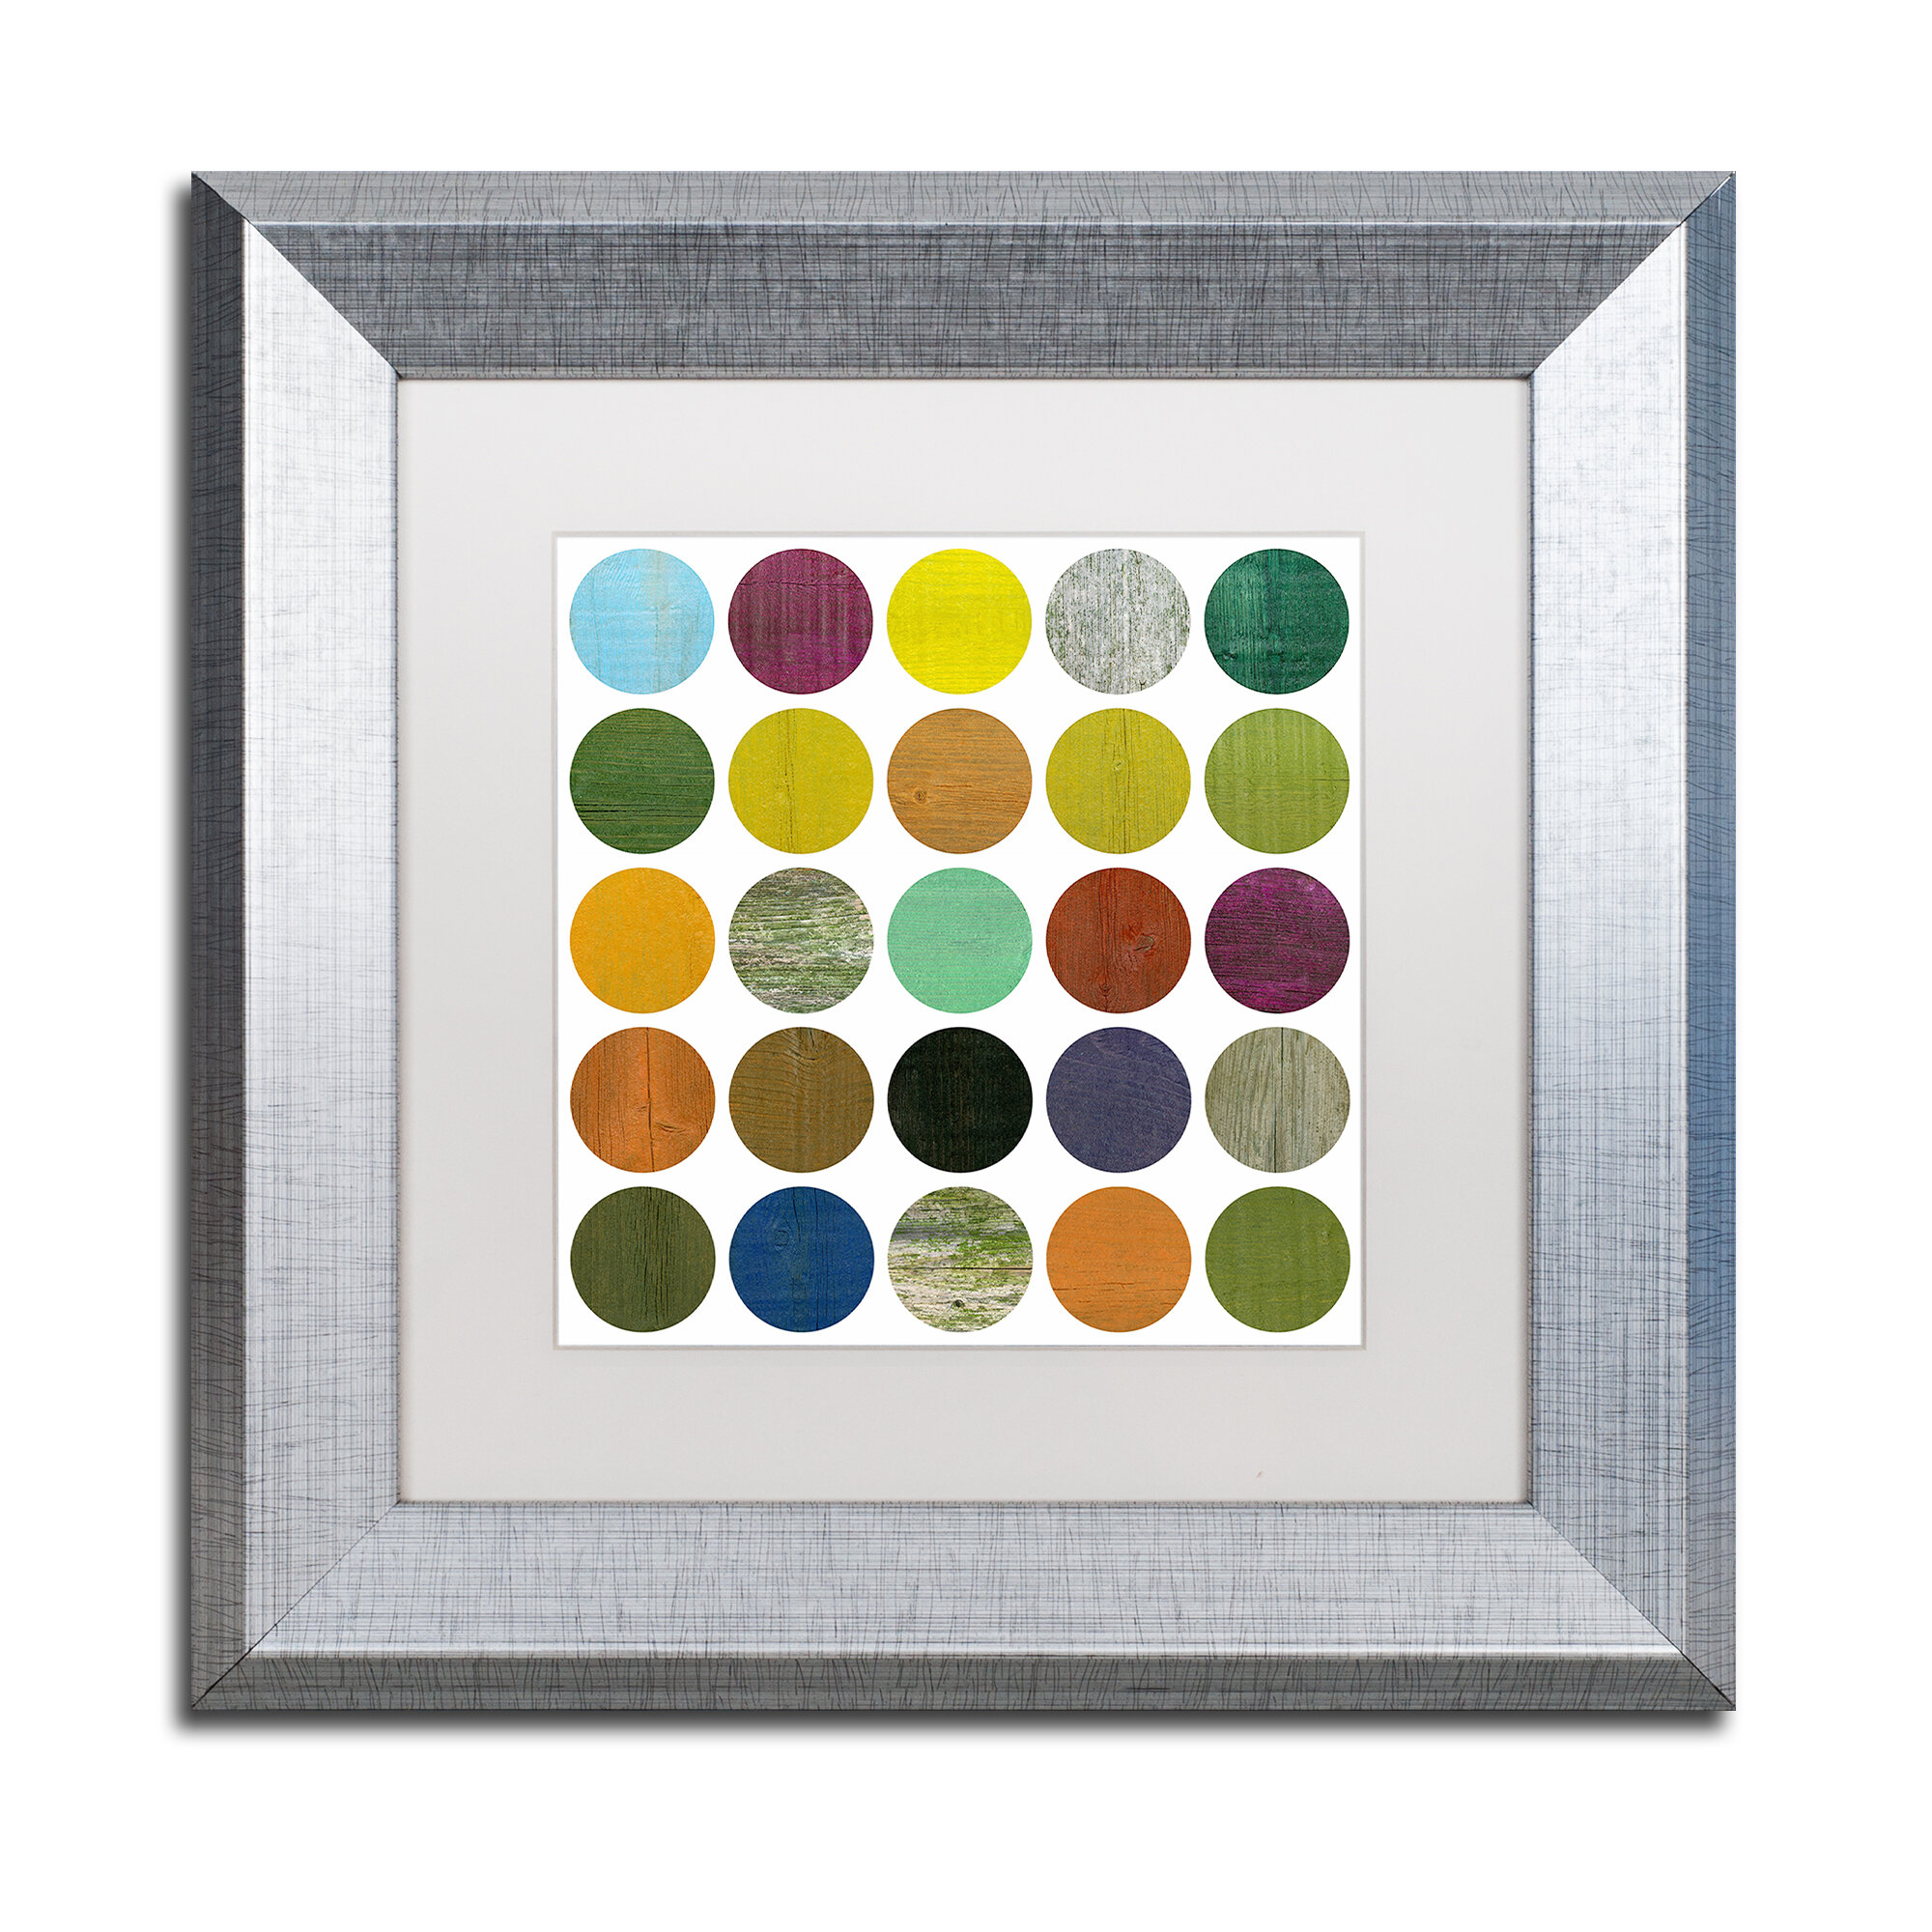 Trademark Art Rustic Rounds 4 0 By Michelle Calkins Framed Print On Canvas Wayfair